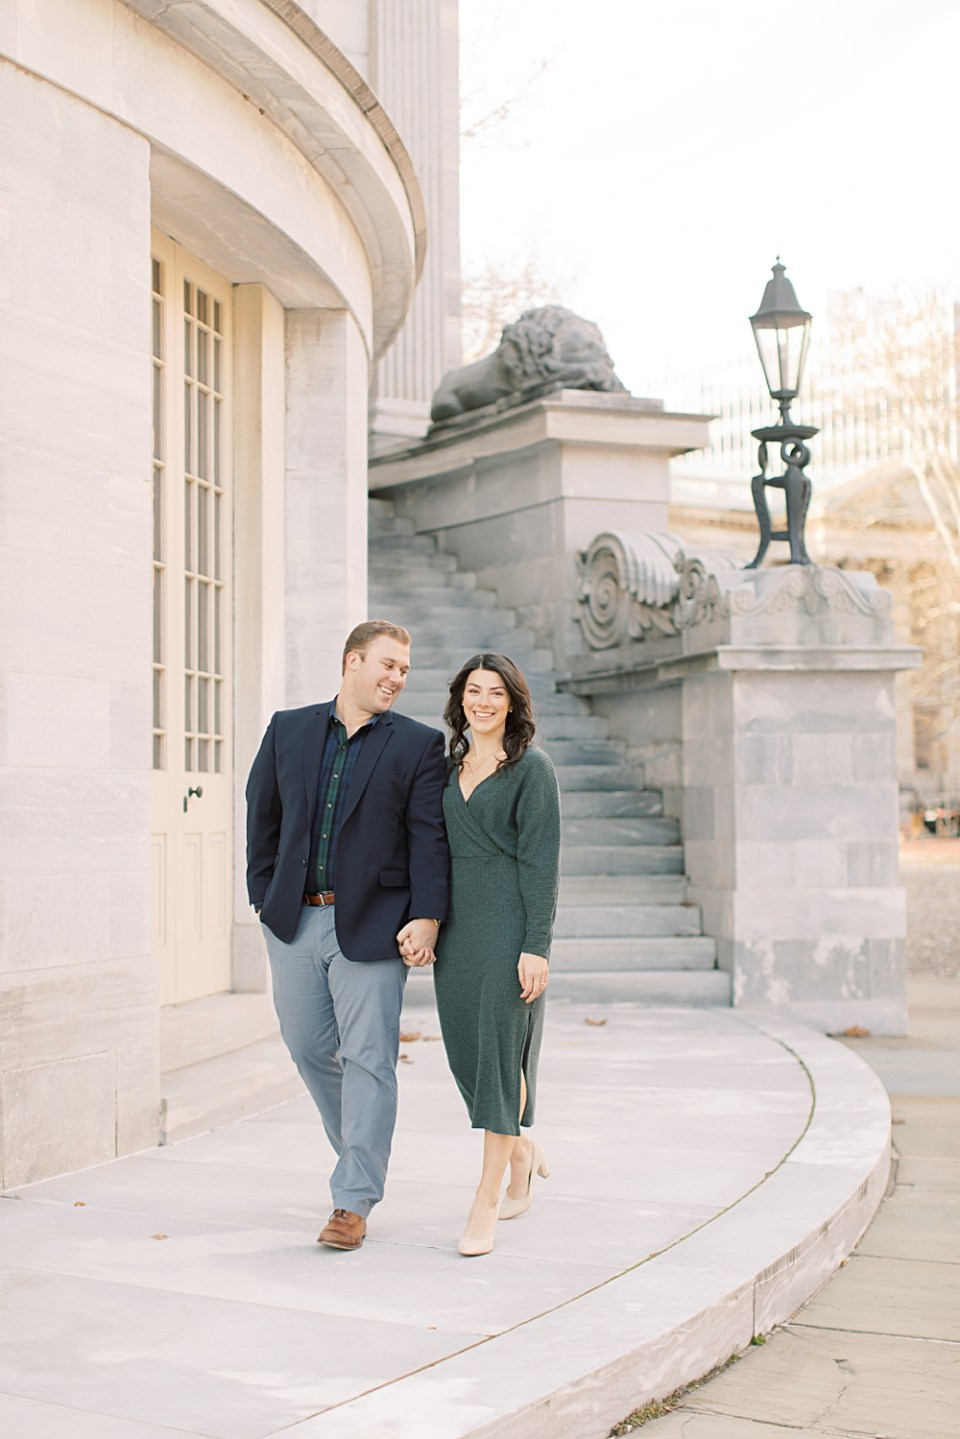 Engagement photos at Merchant's Exchange Building | Sarah Canning Photography